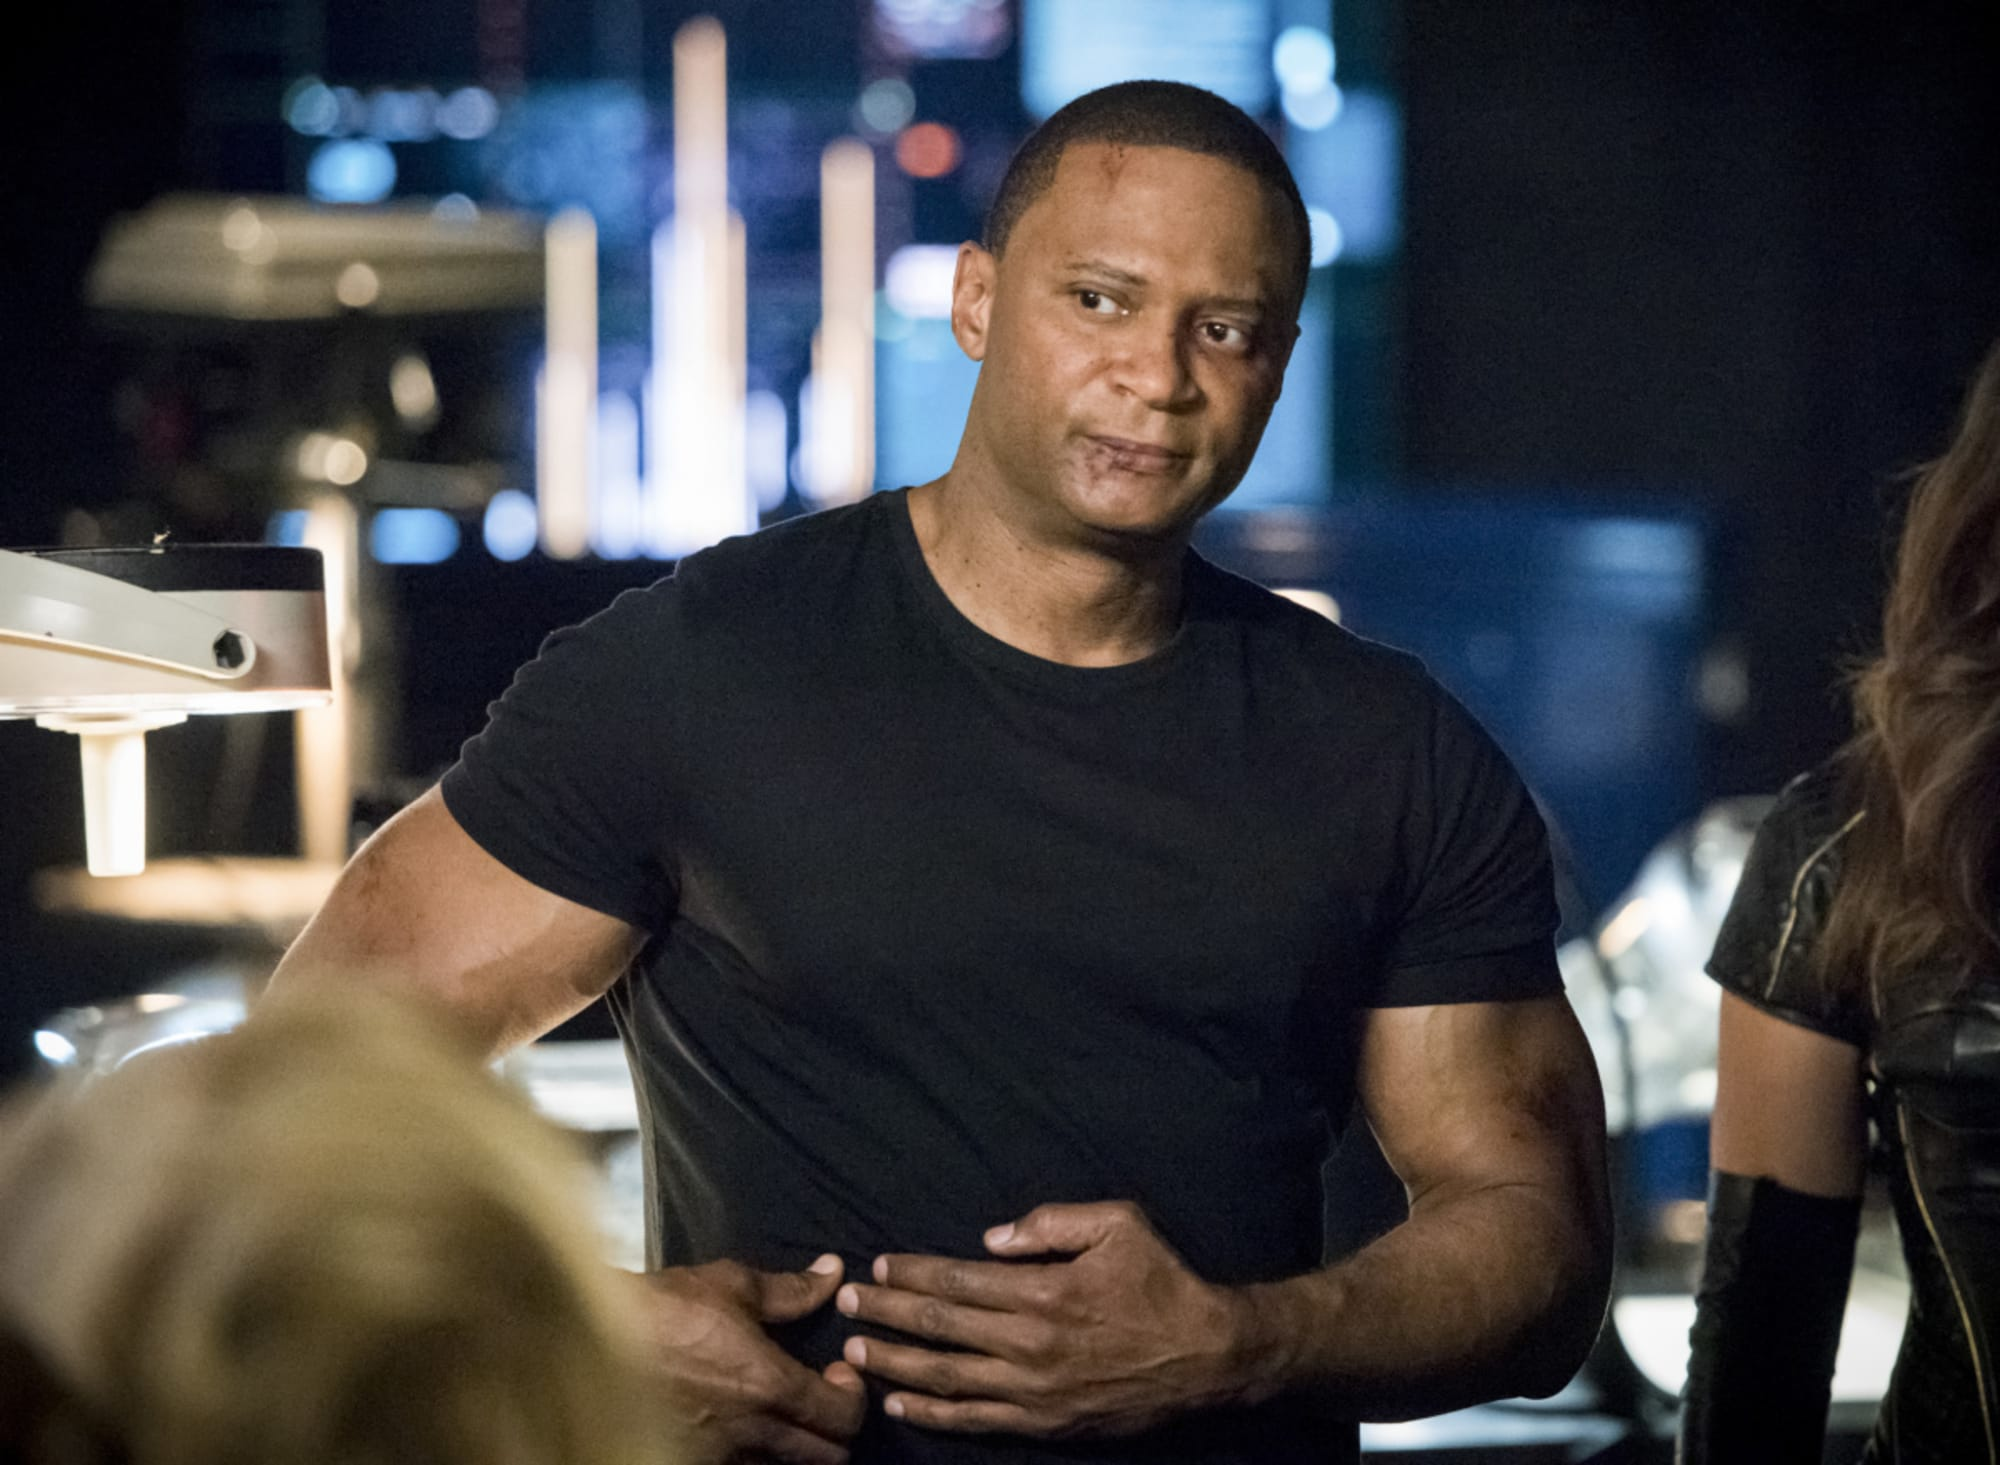 Arrowverse: David Ramsey's surprising Legends of Tomorrow character revealed